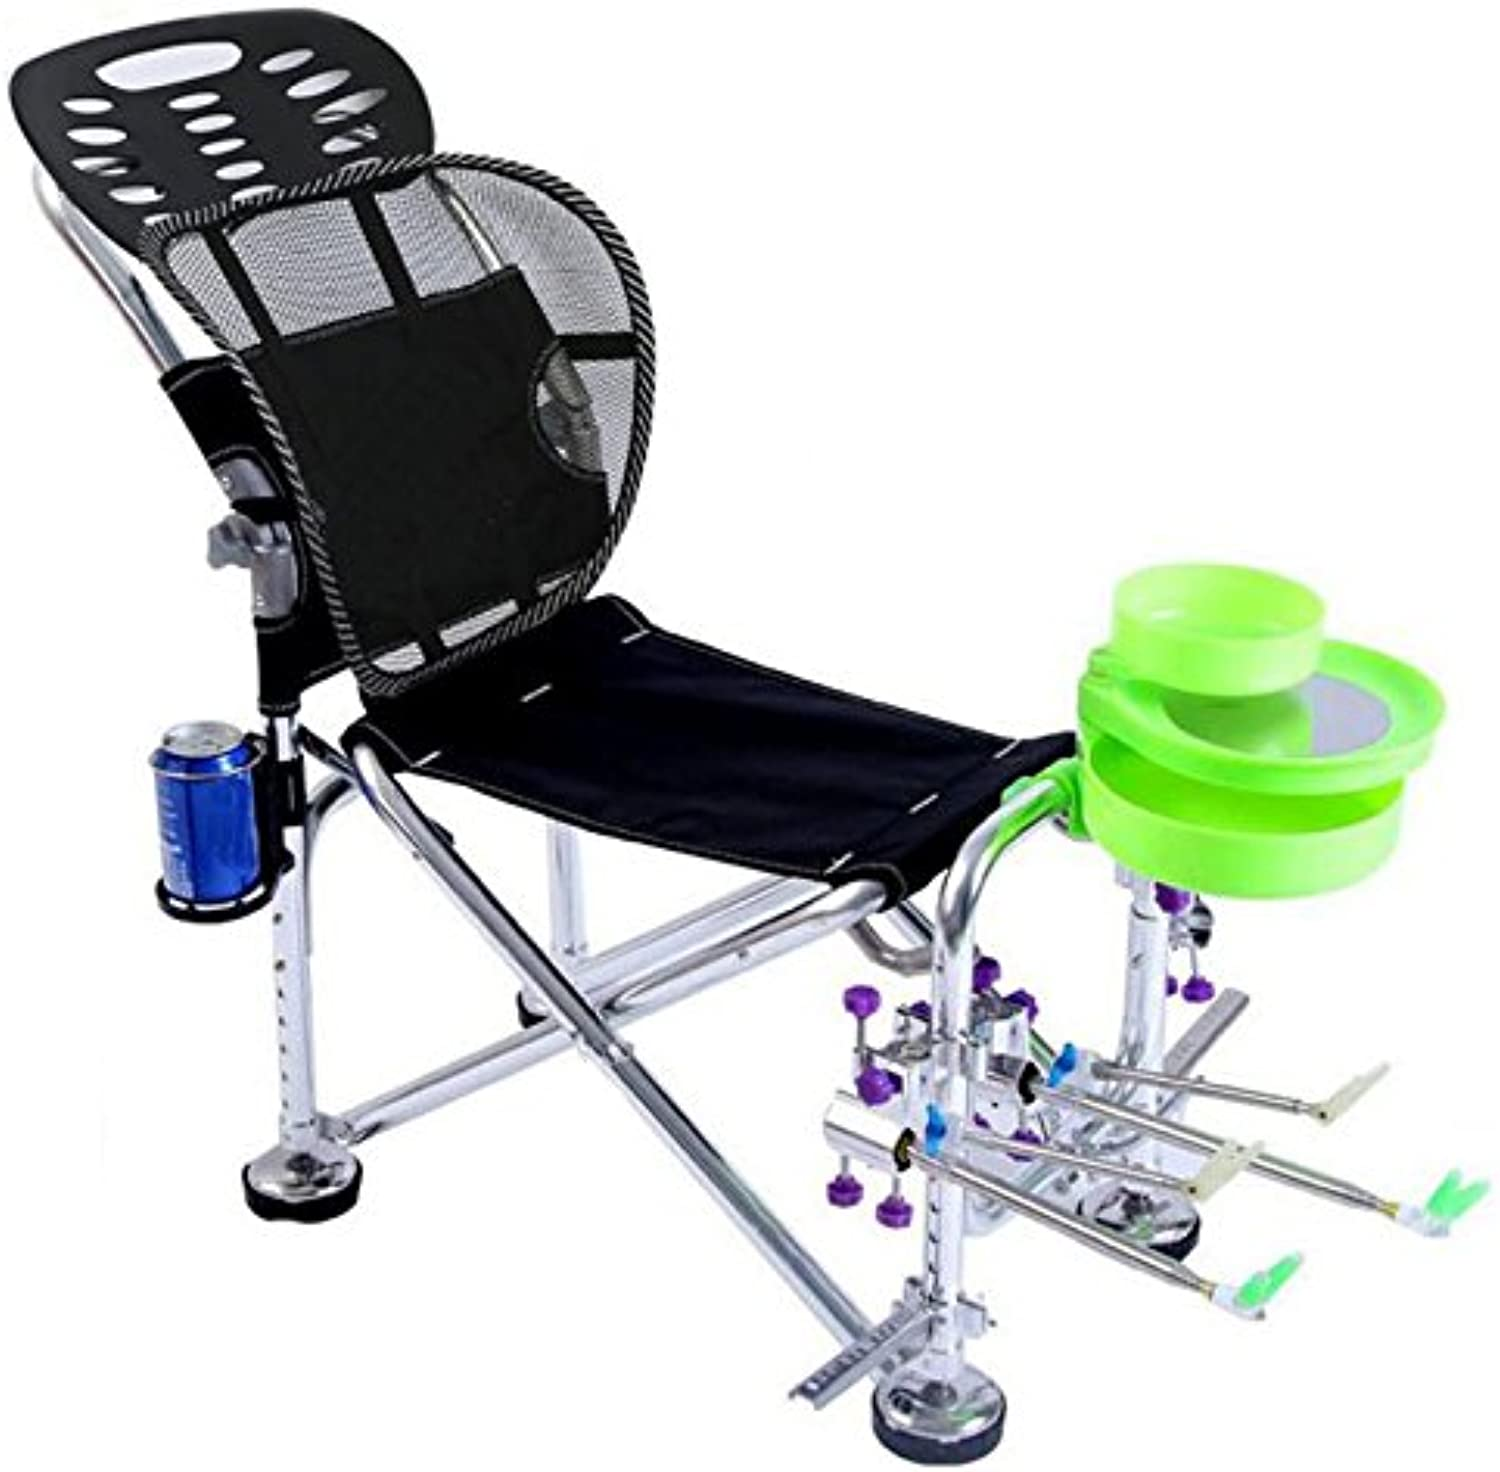 Fishing Recliner Fishing Chair Outdoor Multifunctional Fishing Chair Aluminum Alloy Material Wild Fishing Special. (color   A)